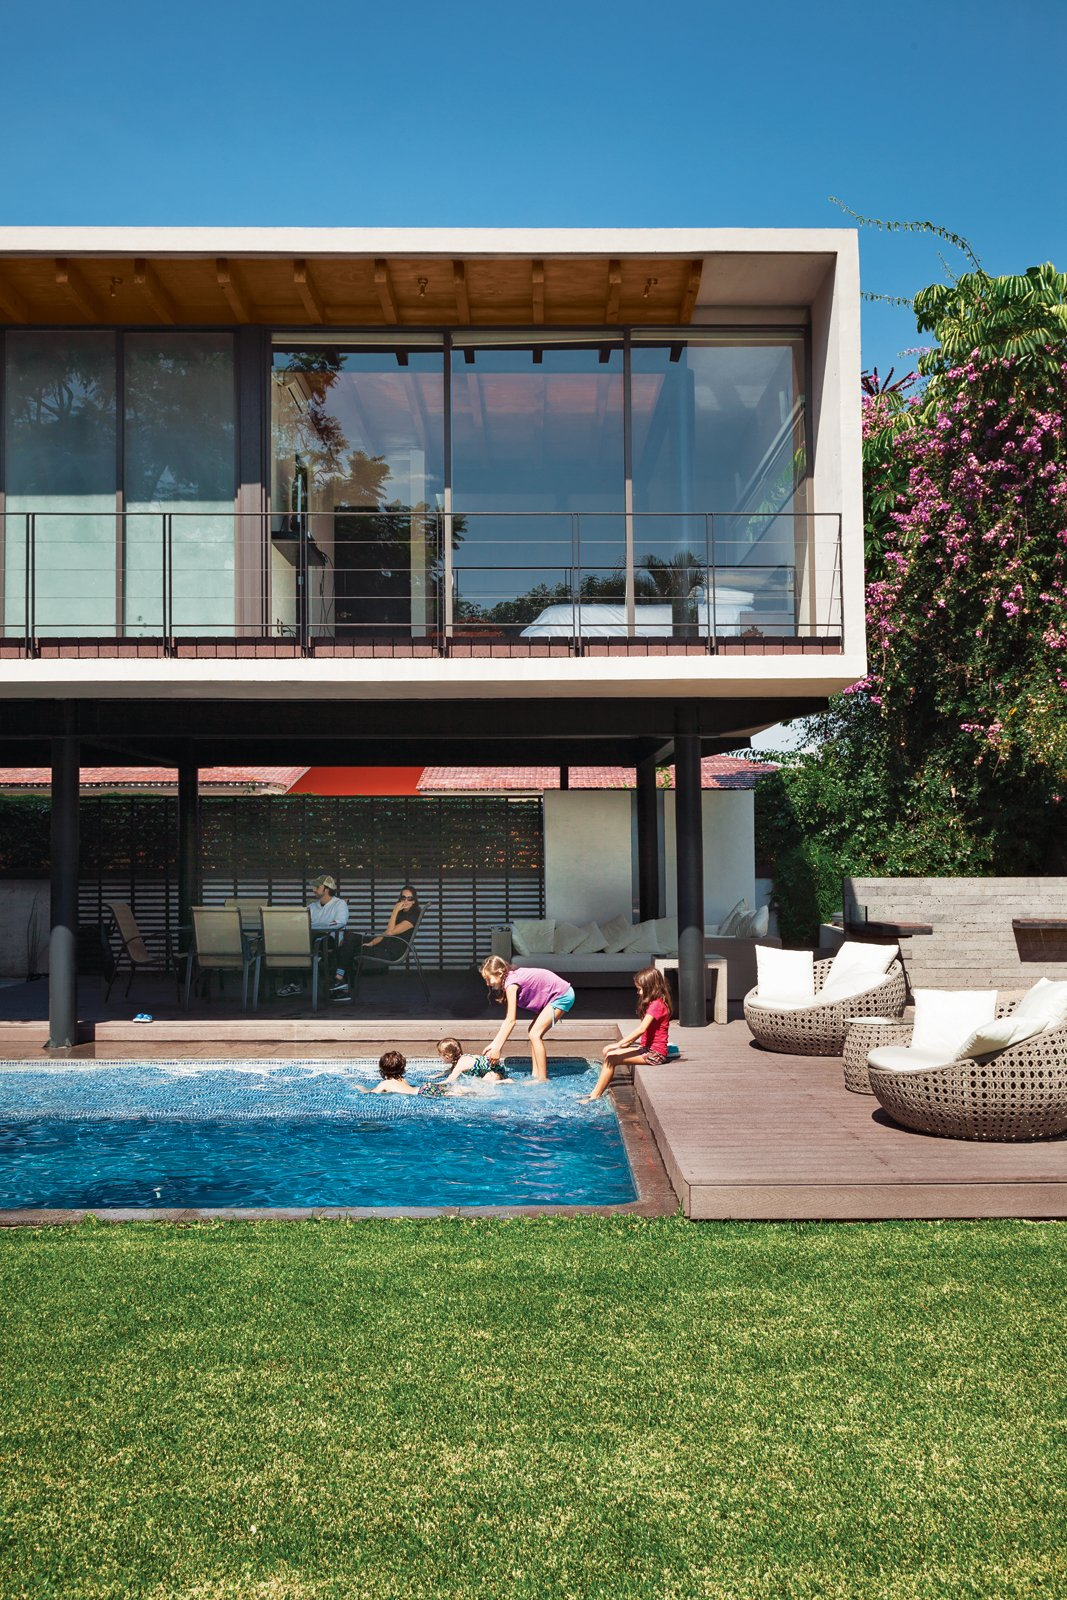 On an idyllic afternoon, members of the Oropeza and Castillo clans splash in the backyard pool framed by Trex decking and outfitted with furniture by Móbica.  Modern Pool Design by Dwell from An Affordable High-Design Vacation Home in Mexico